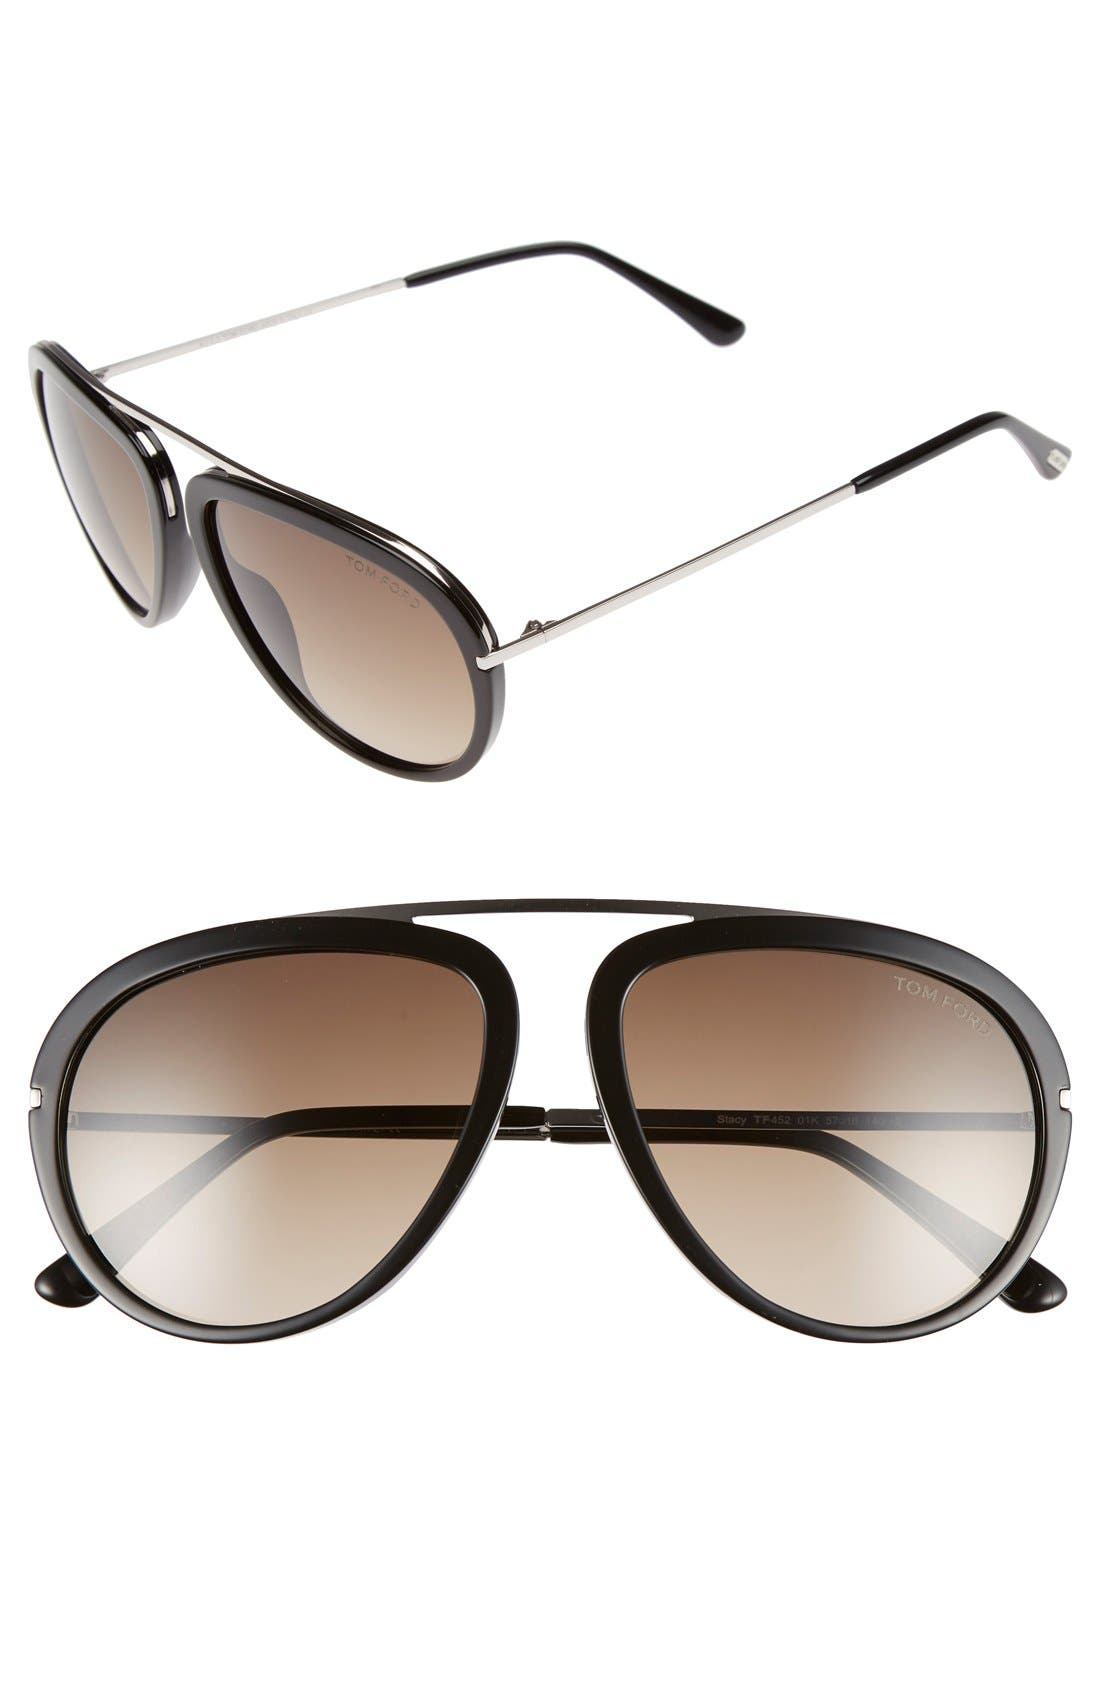 Main Image - Tom Ford 'Stacy' 57mm Aviator Sunglasses